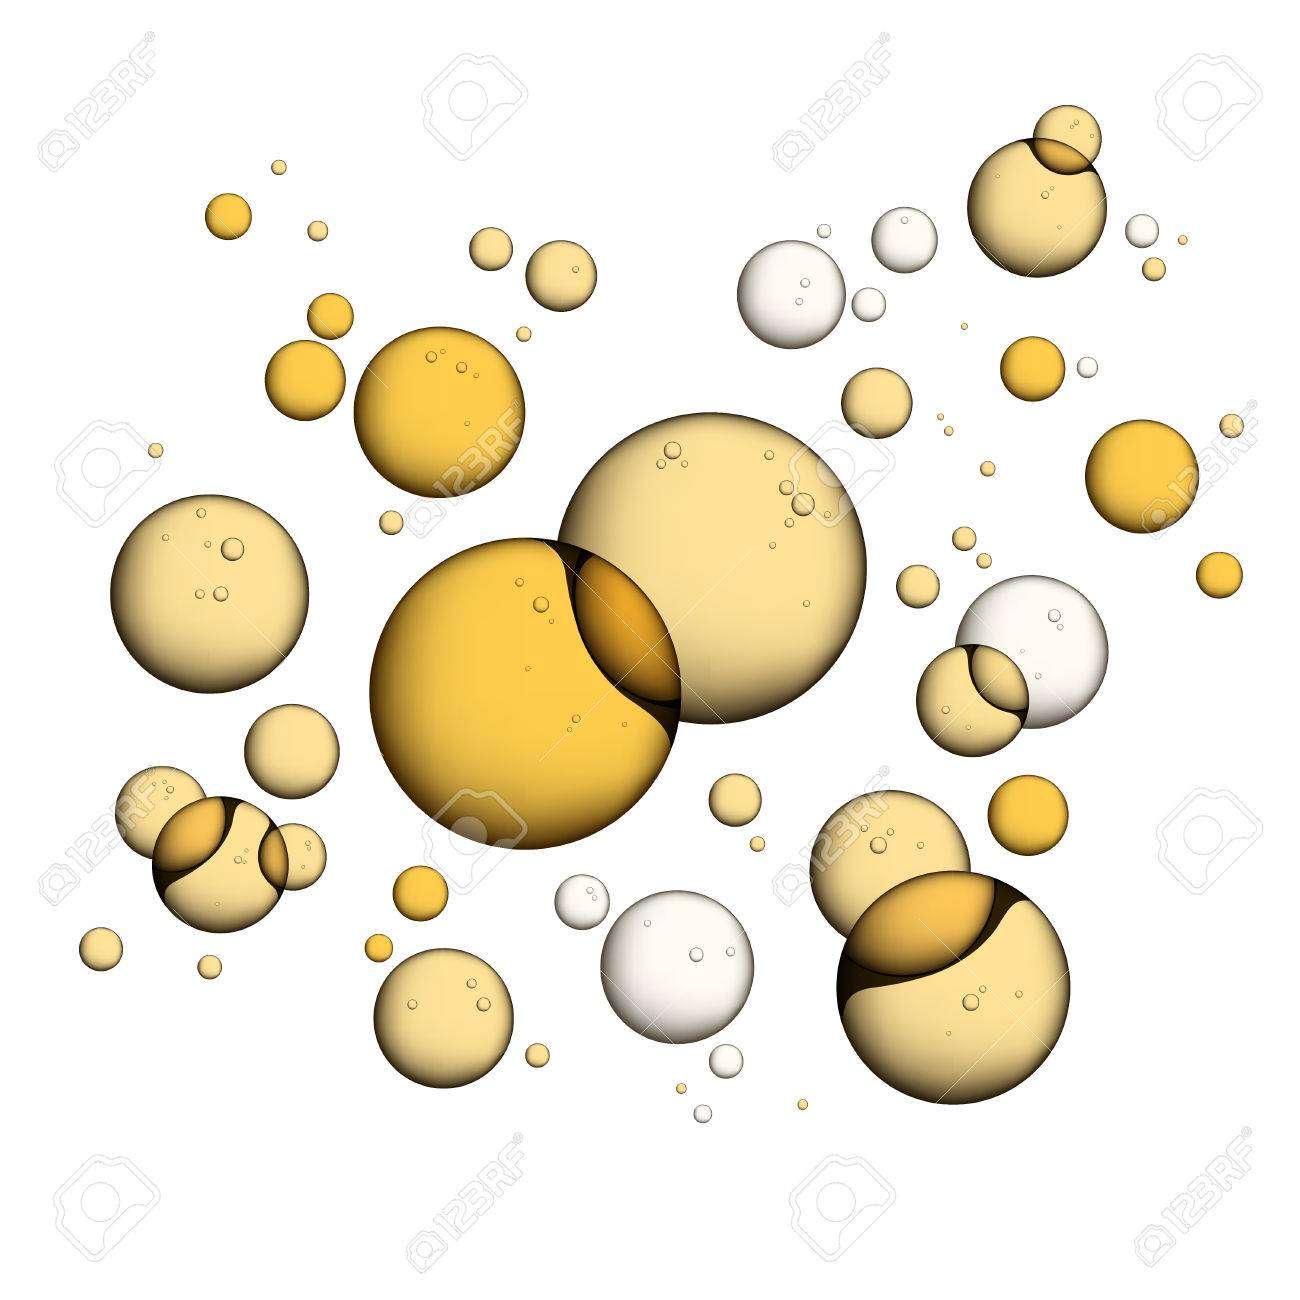 Oil Bubbles Isolated on White Closeup Collagen Emulsion in Water. . Gold Serum Droplets. - 68480247